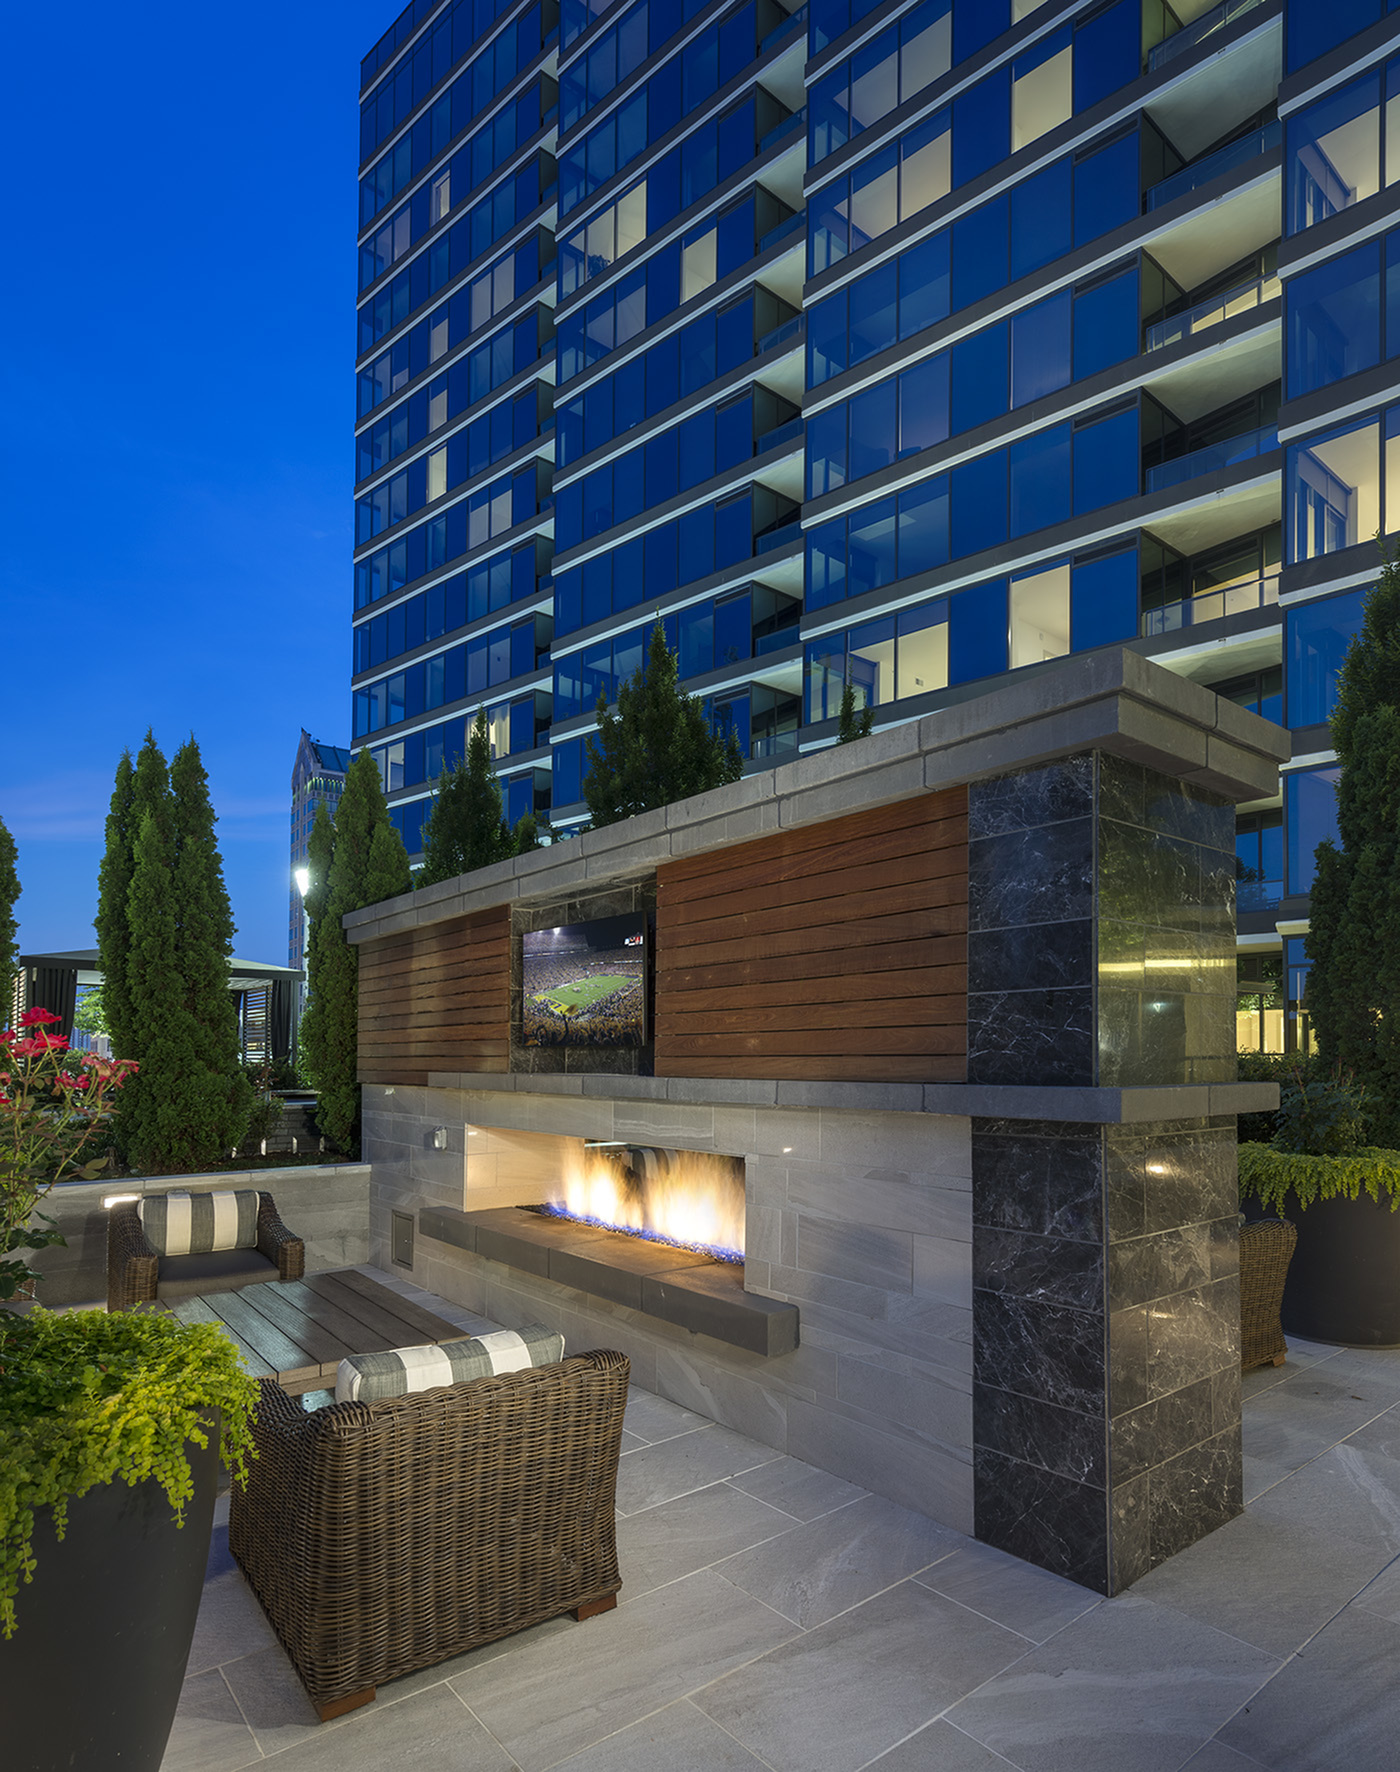 Image of Outdoor conversational fire pit for Hanover Buckhead Village